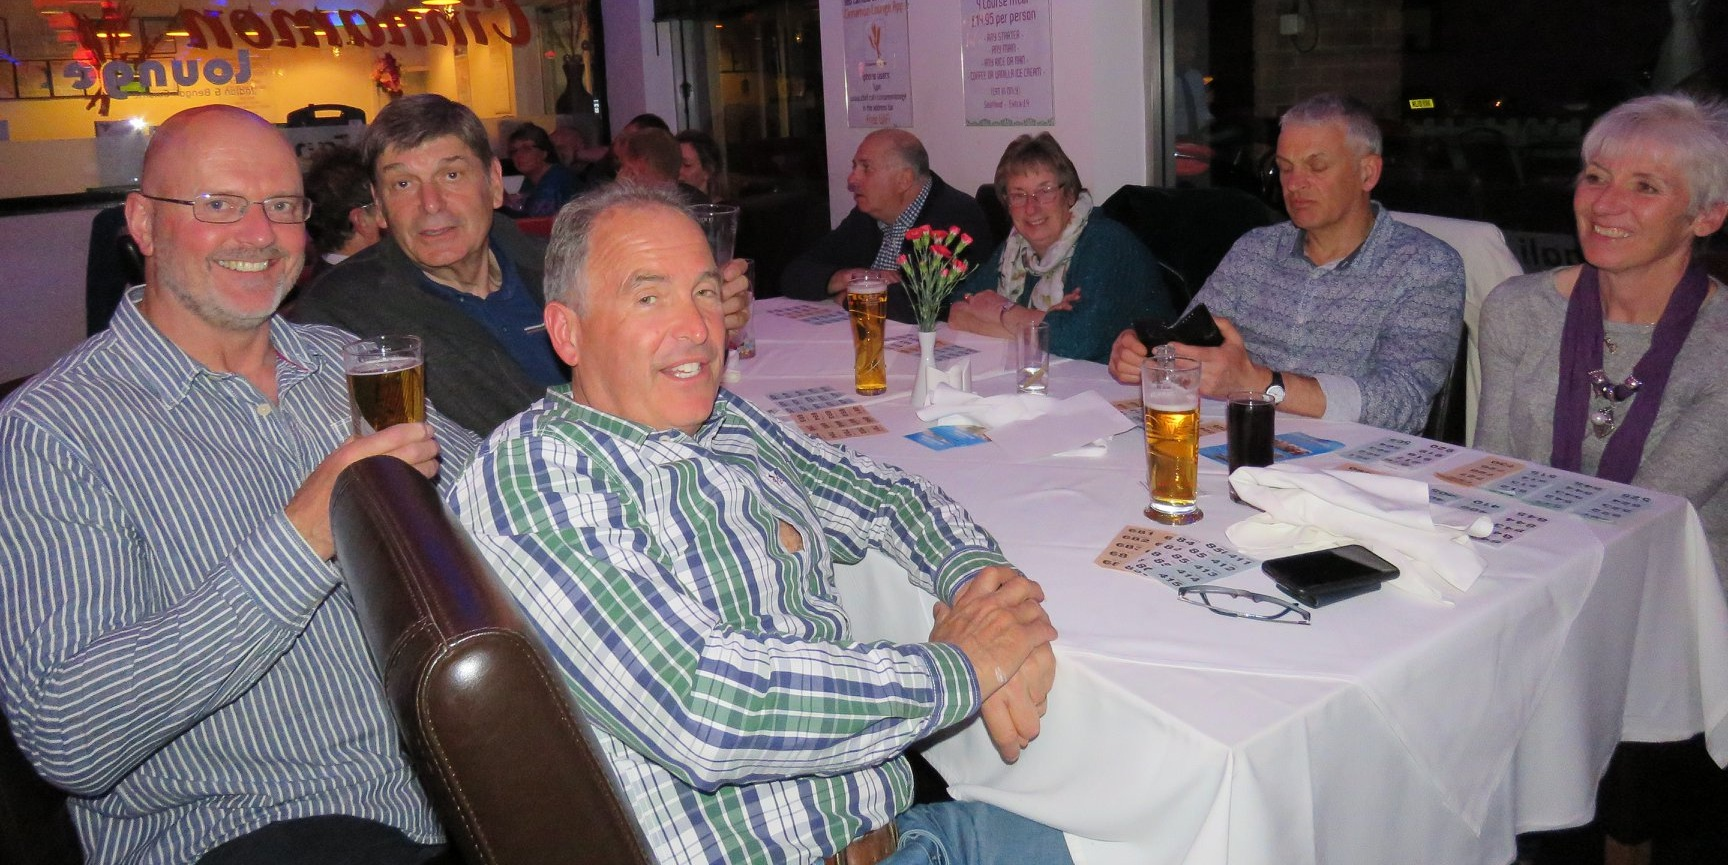 Paul Hooker far left - organiser of the 4th JTYAF Curry Night - photo courtesy of Mags4Dorset